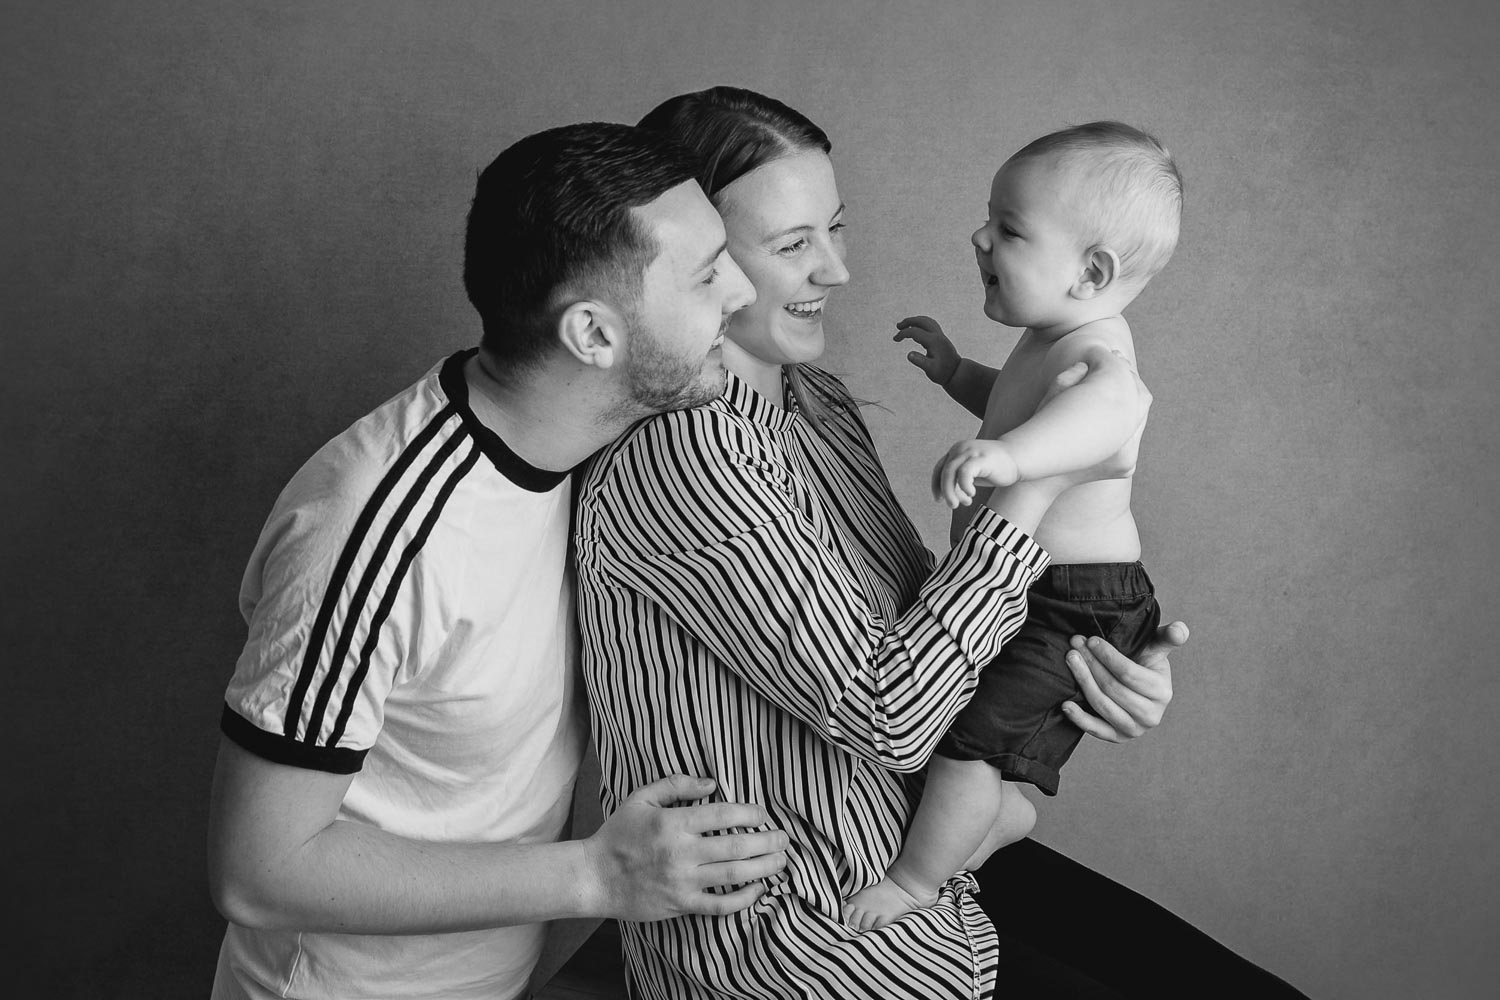 black and white family photograph by siobhan kelly photography